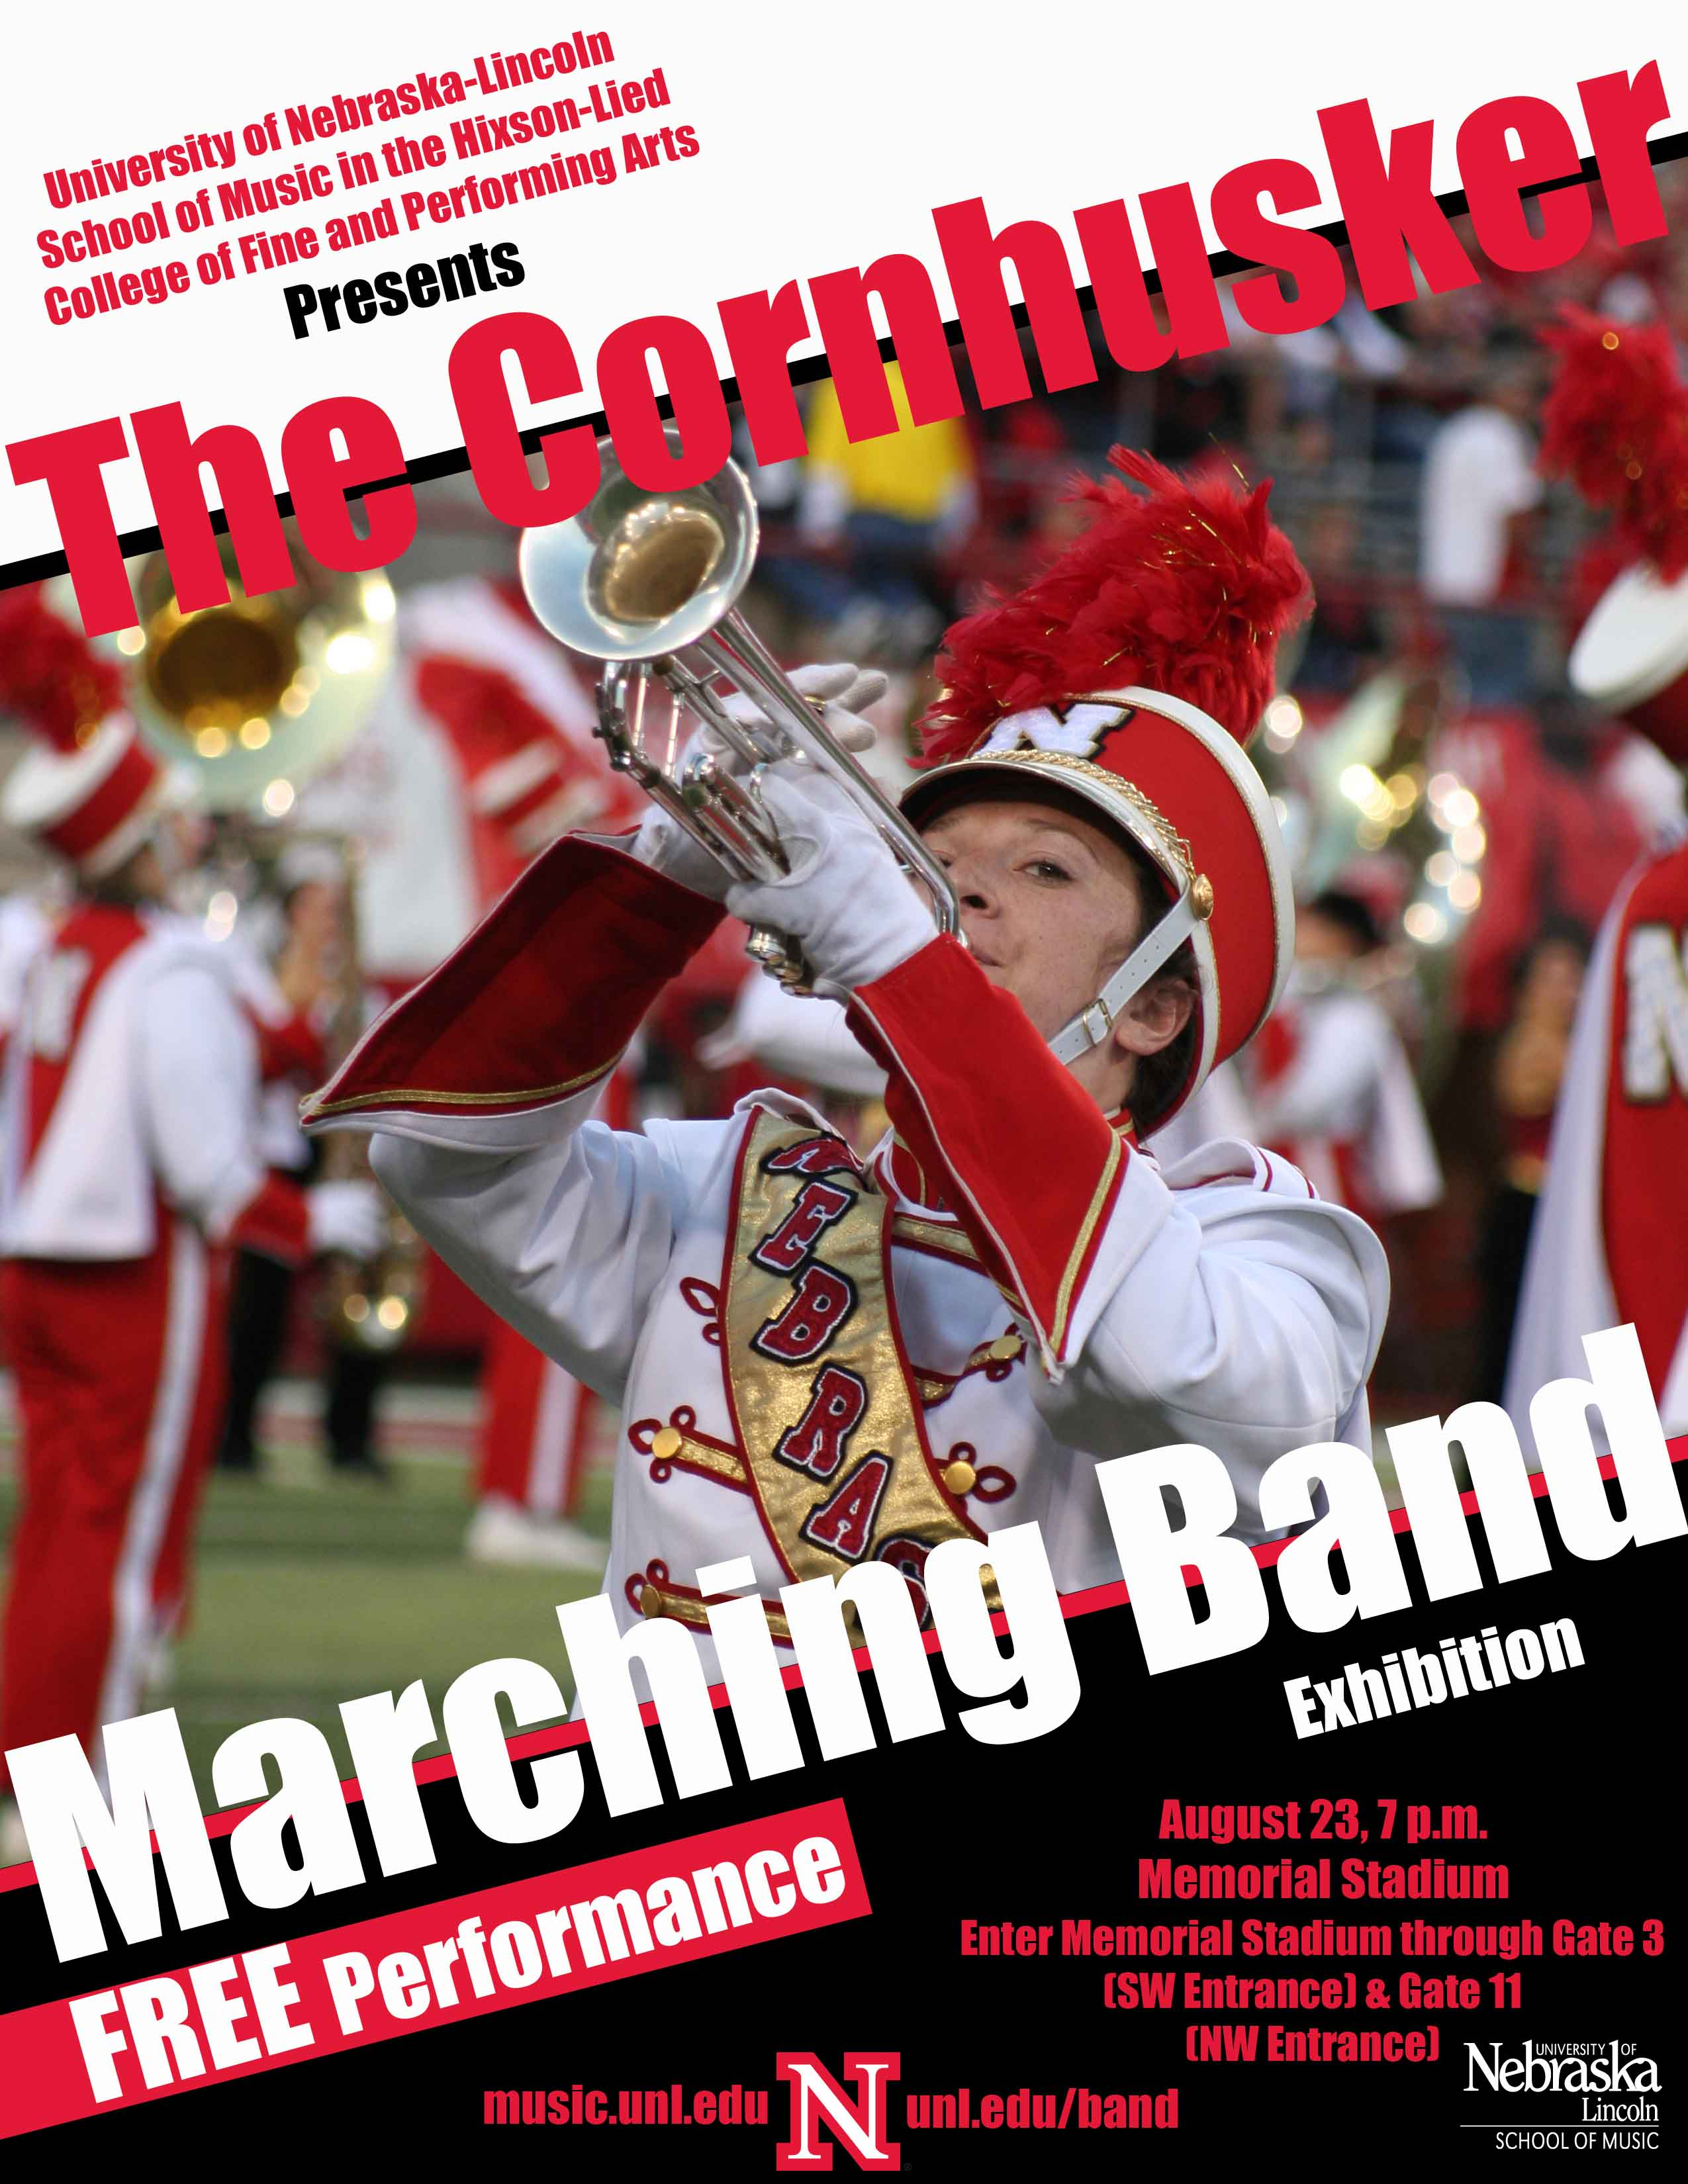 The Cornhusker Marching Band Exhibition | Music@UNL